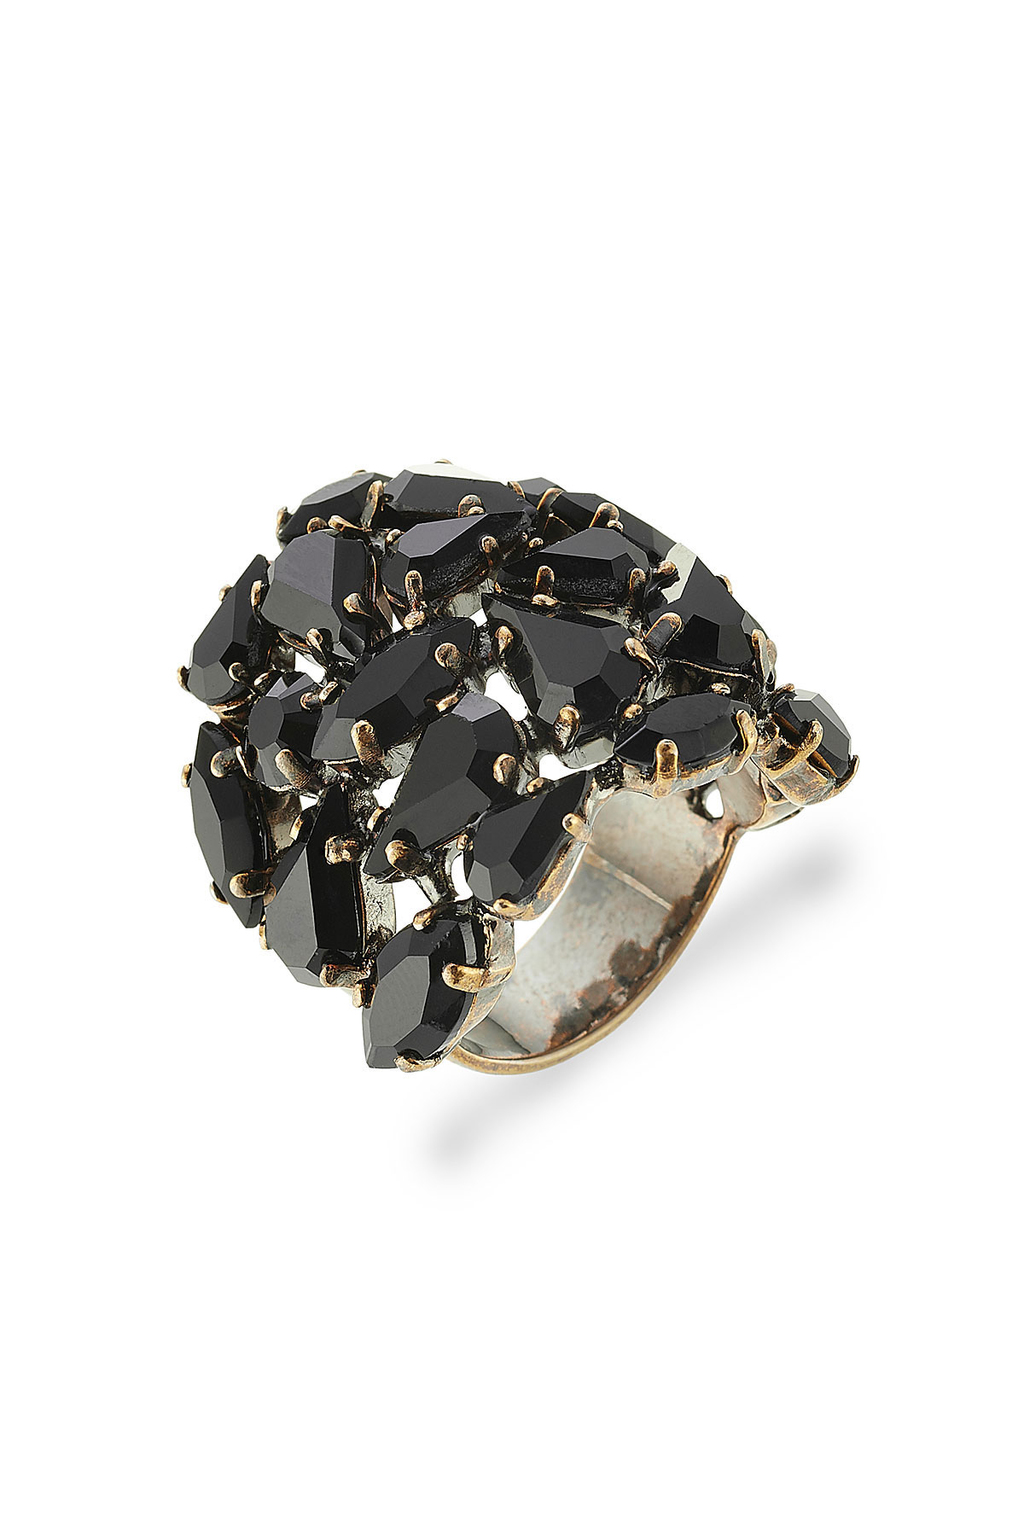 Embellished Ring - predominant colour: black; occasions: evening, occasion; style: cocktail; size: large/oversized; material: chain/metal; finish: metallic; embellishment: jewels/stone; season: s/s 2016; wardrobe: event